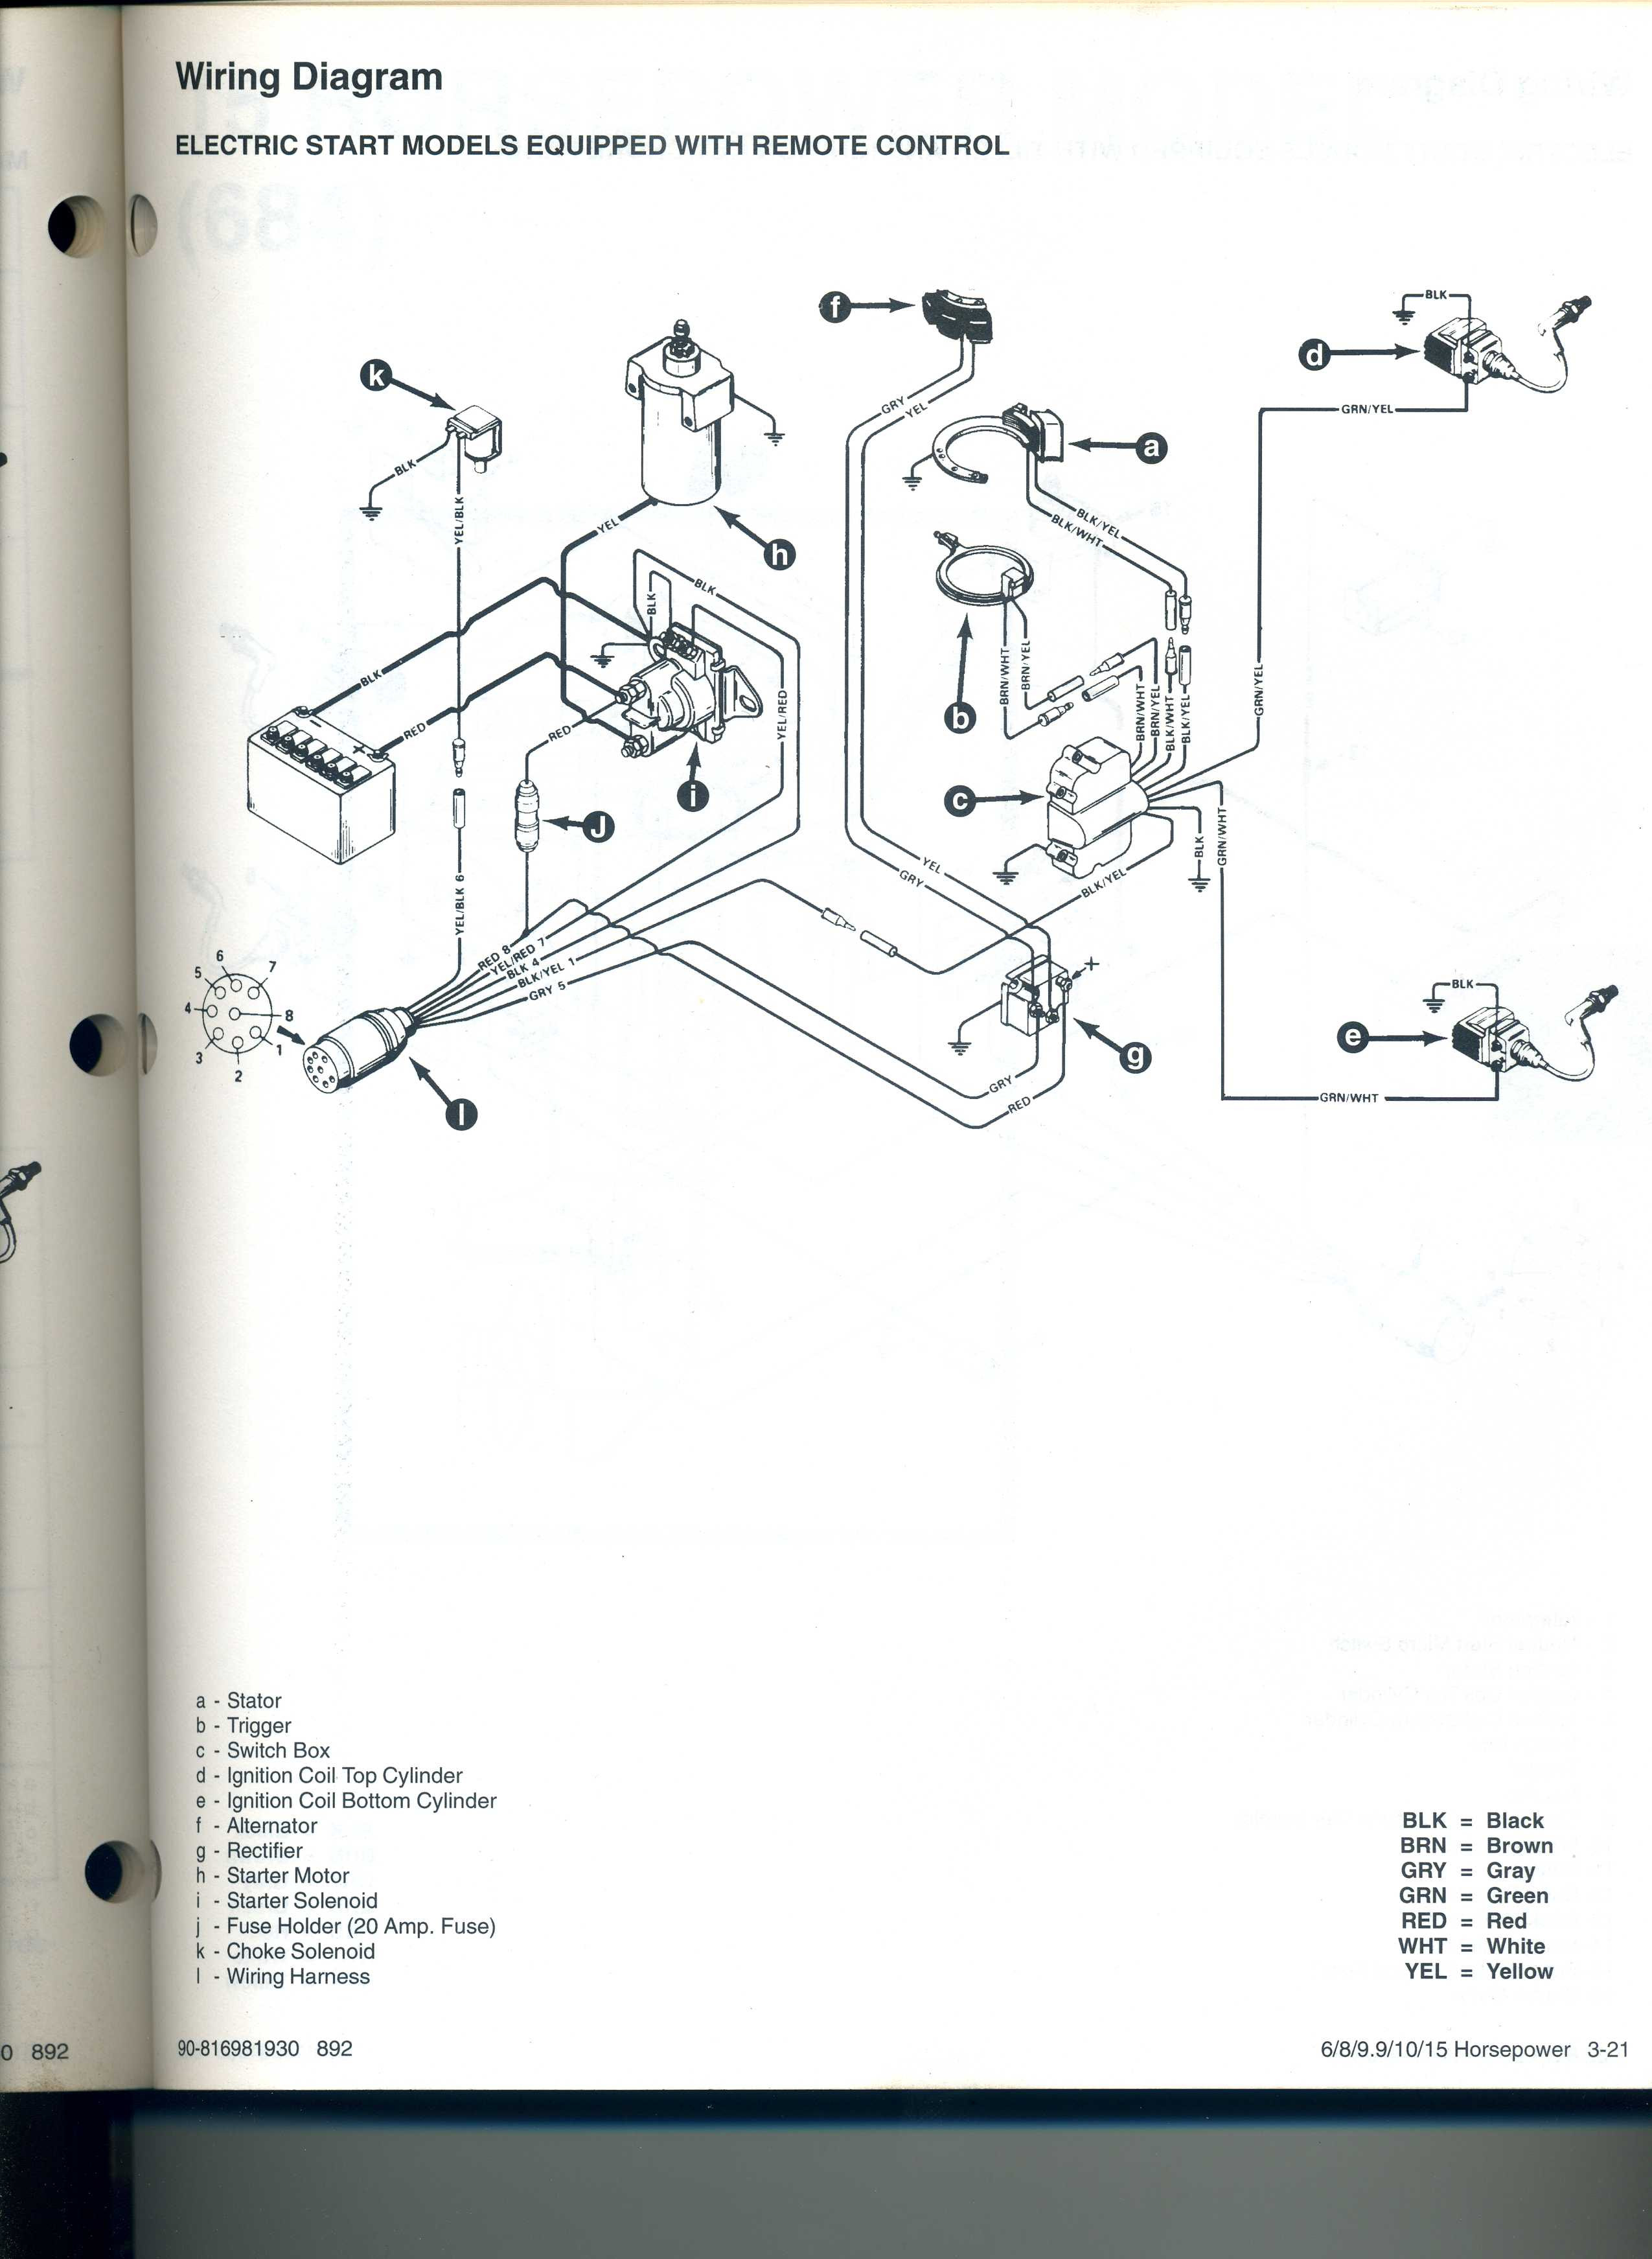 Diagram Yamaha 9 9 Outboard Wiring Diagram Full Version Hd Quality Wiring Diagram Diagrambest Rocoma It